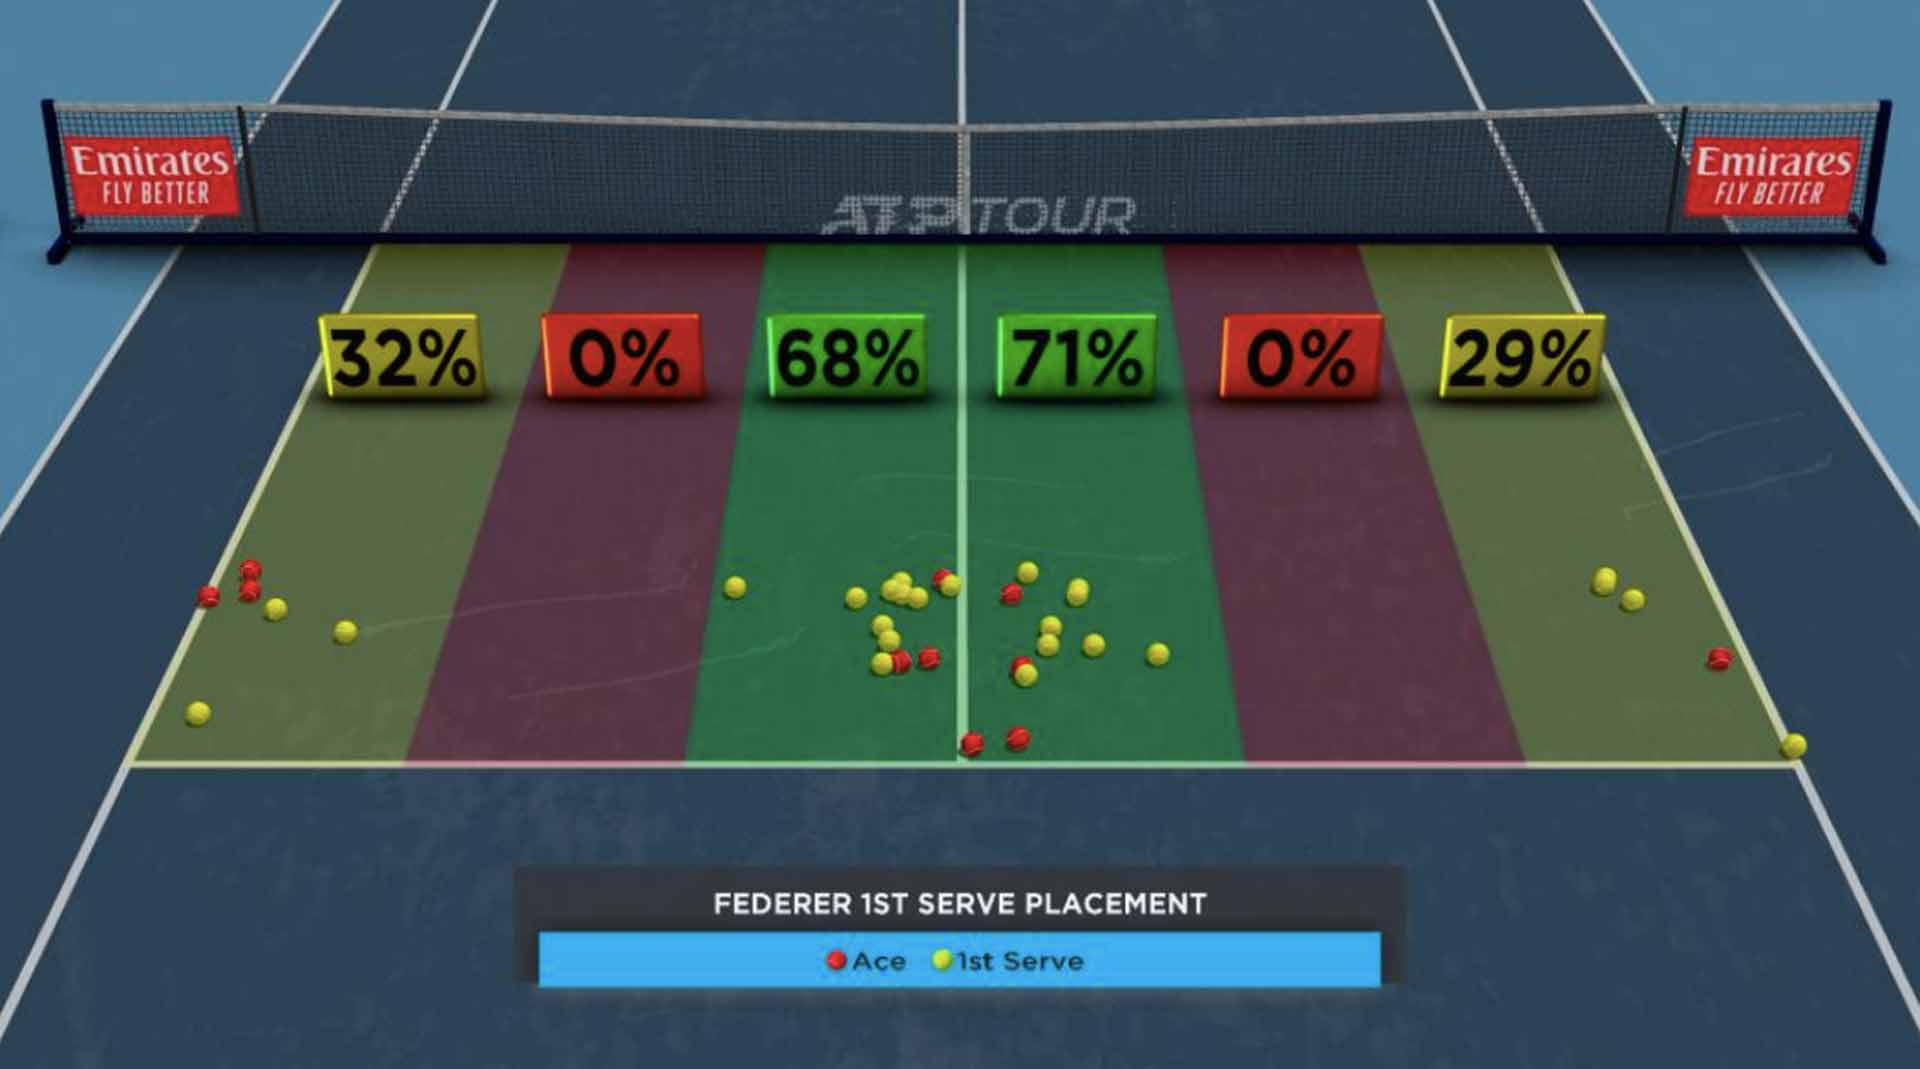 Federer First-Serve Placement